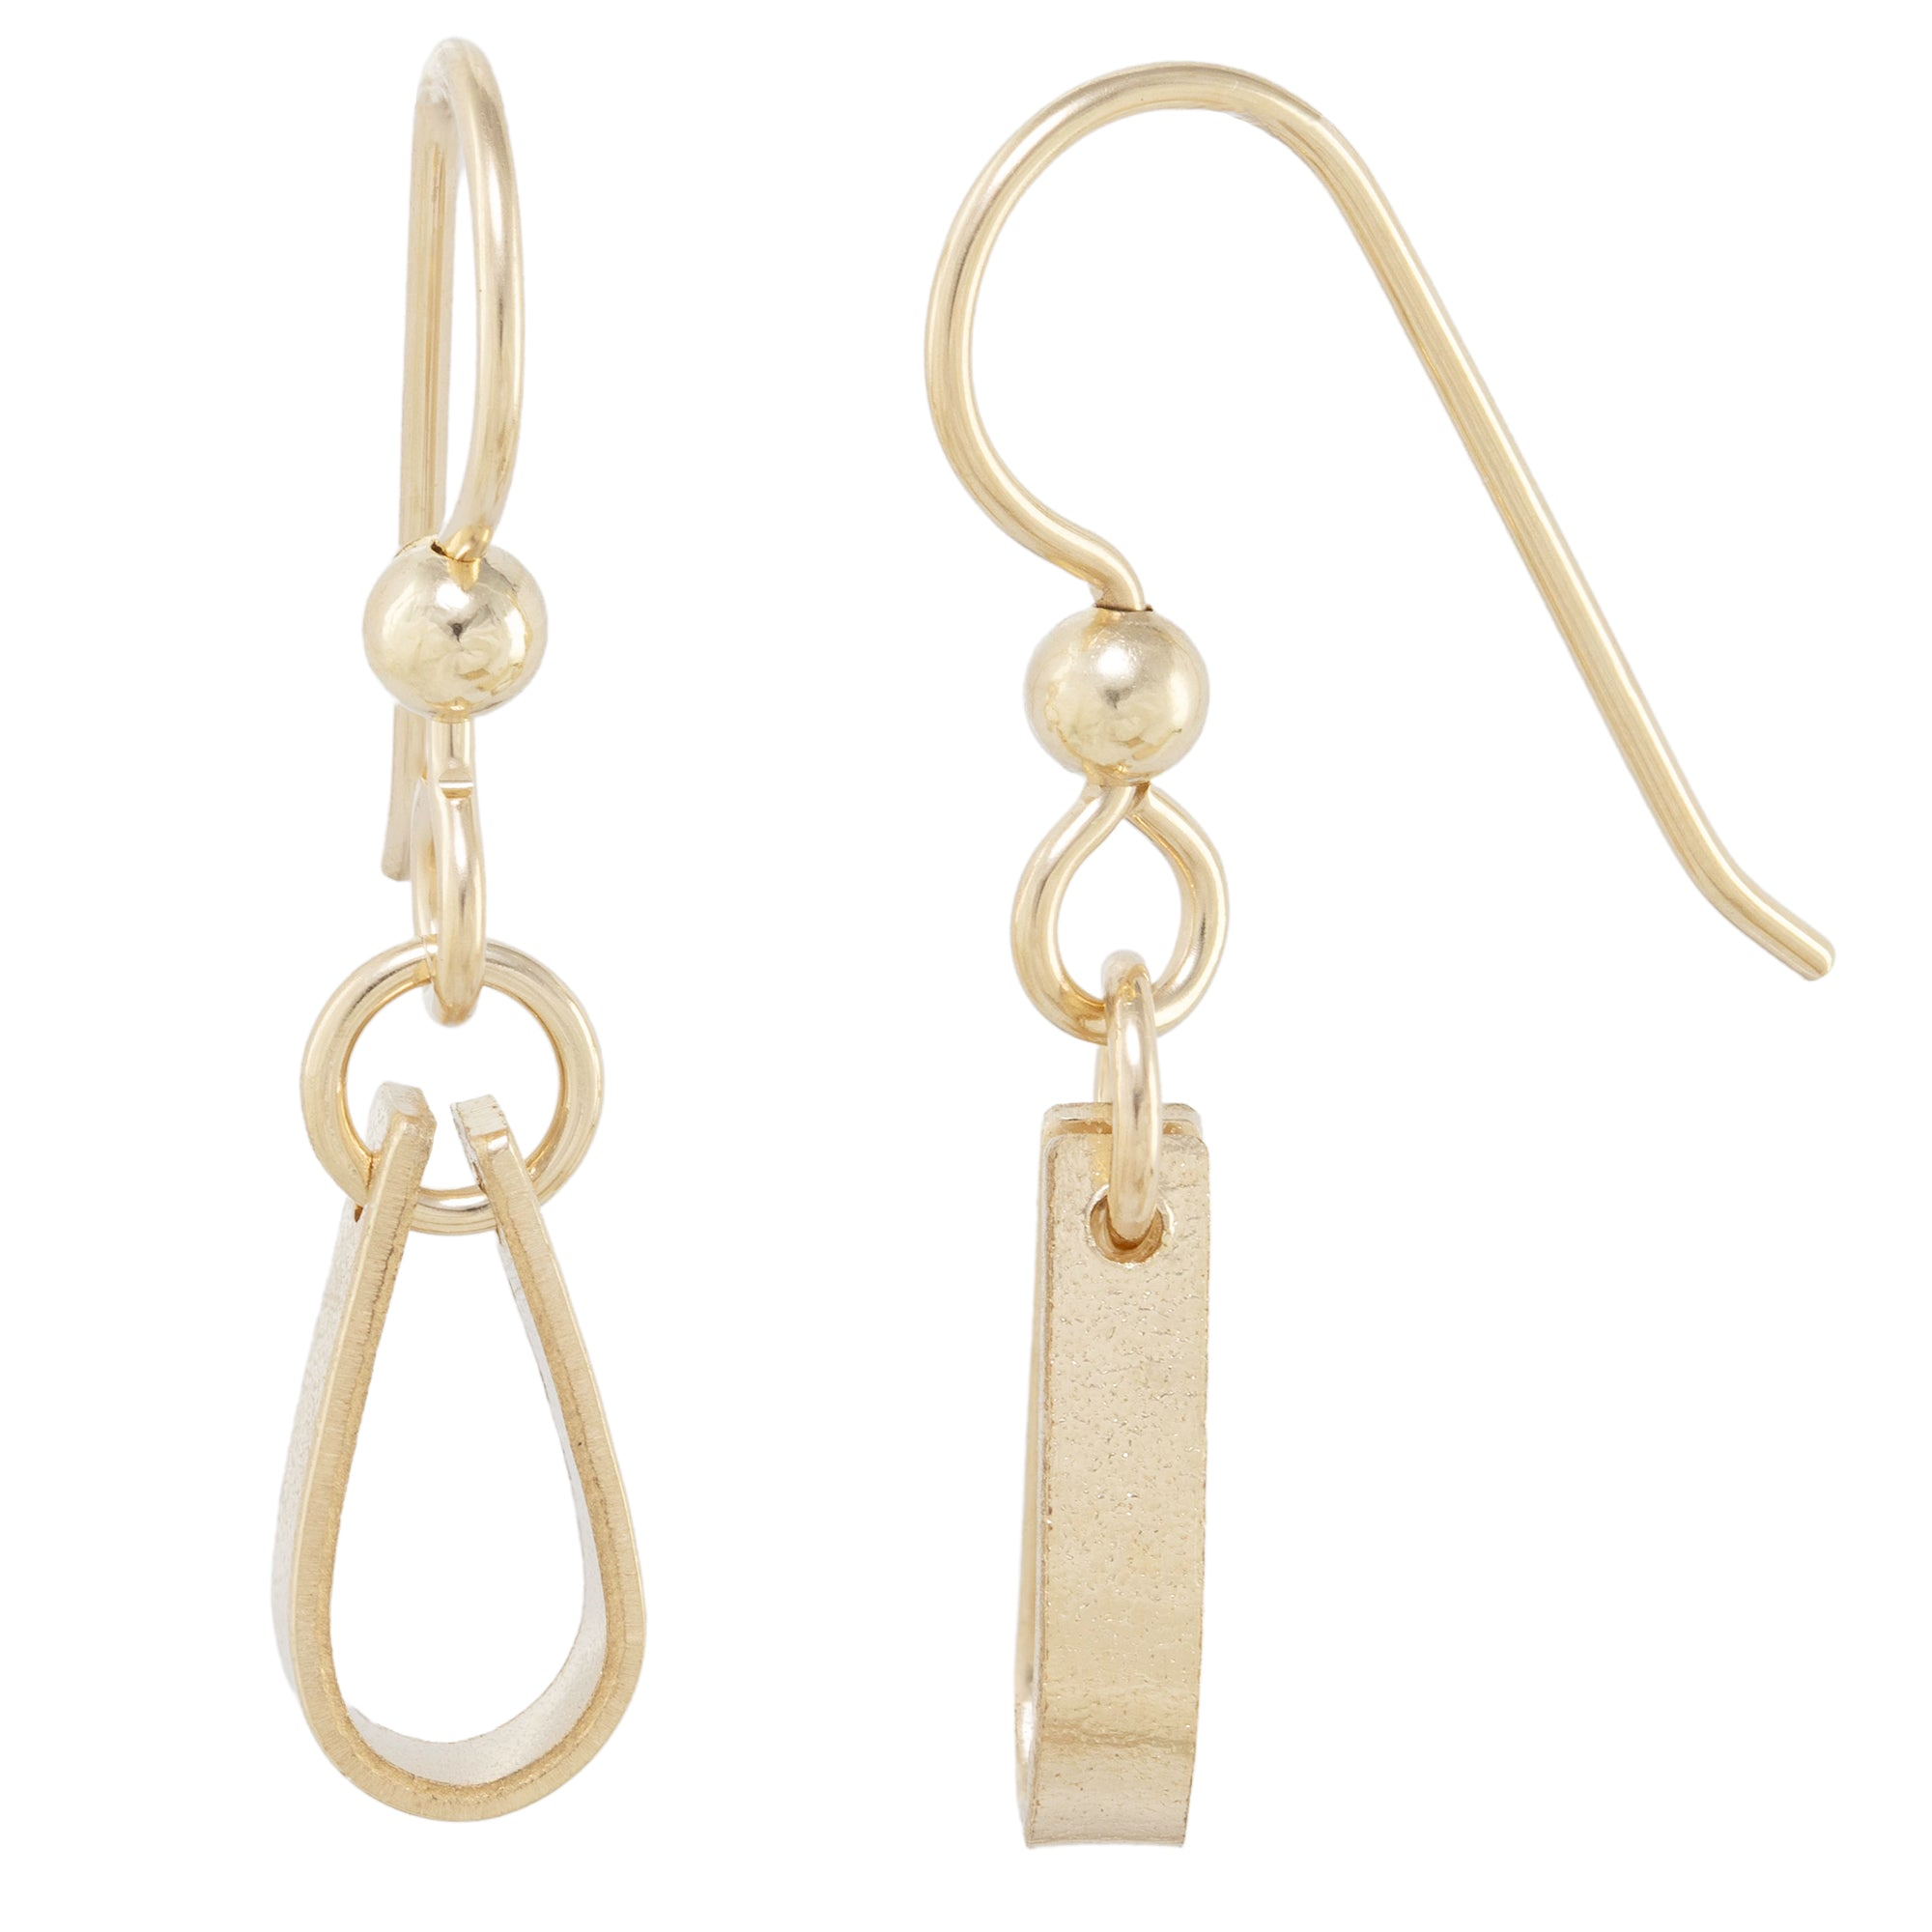 Small Minimalist 14K Yellow Gold Fill Strap Style Dangle Earrings